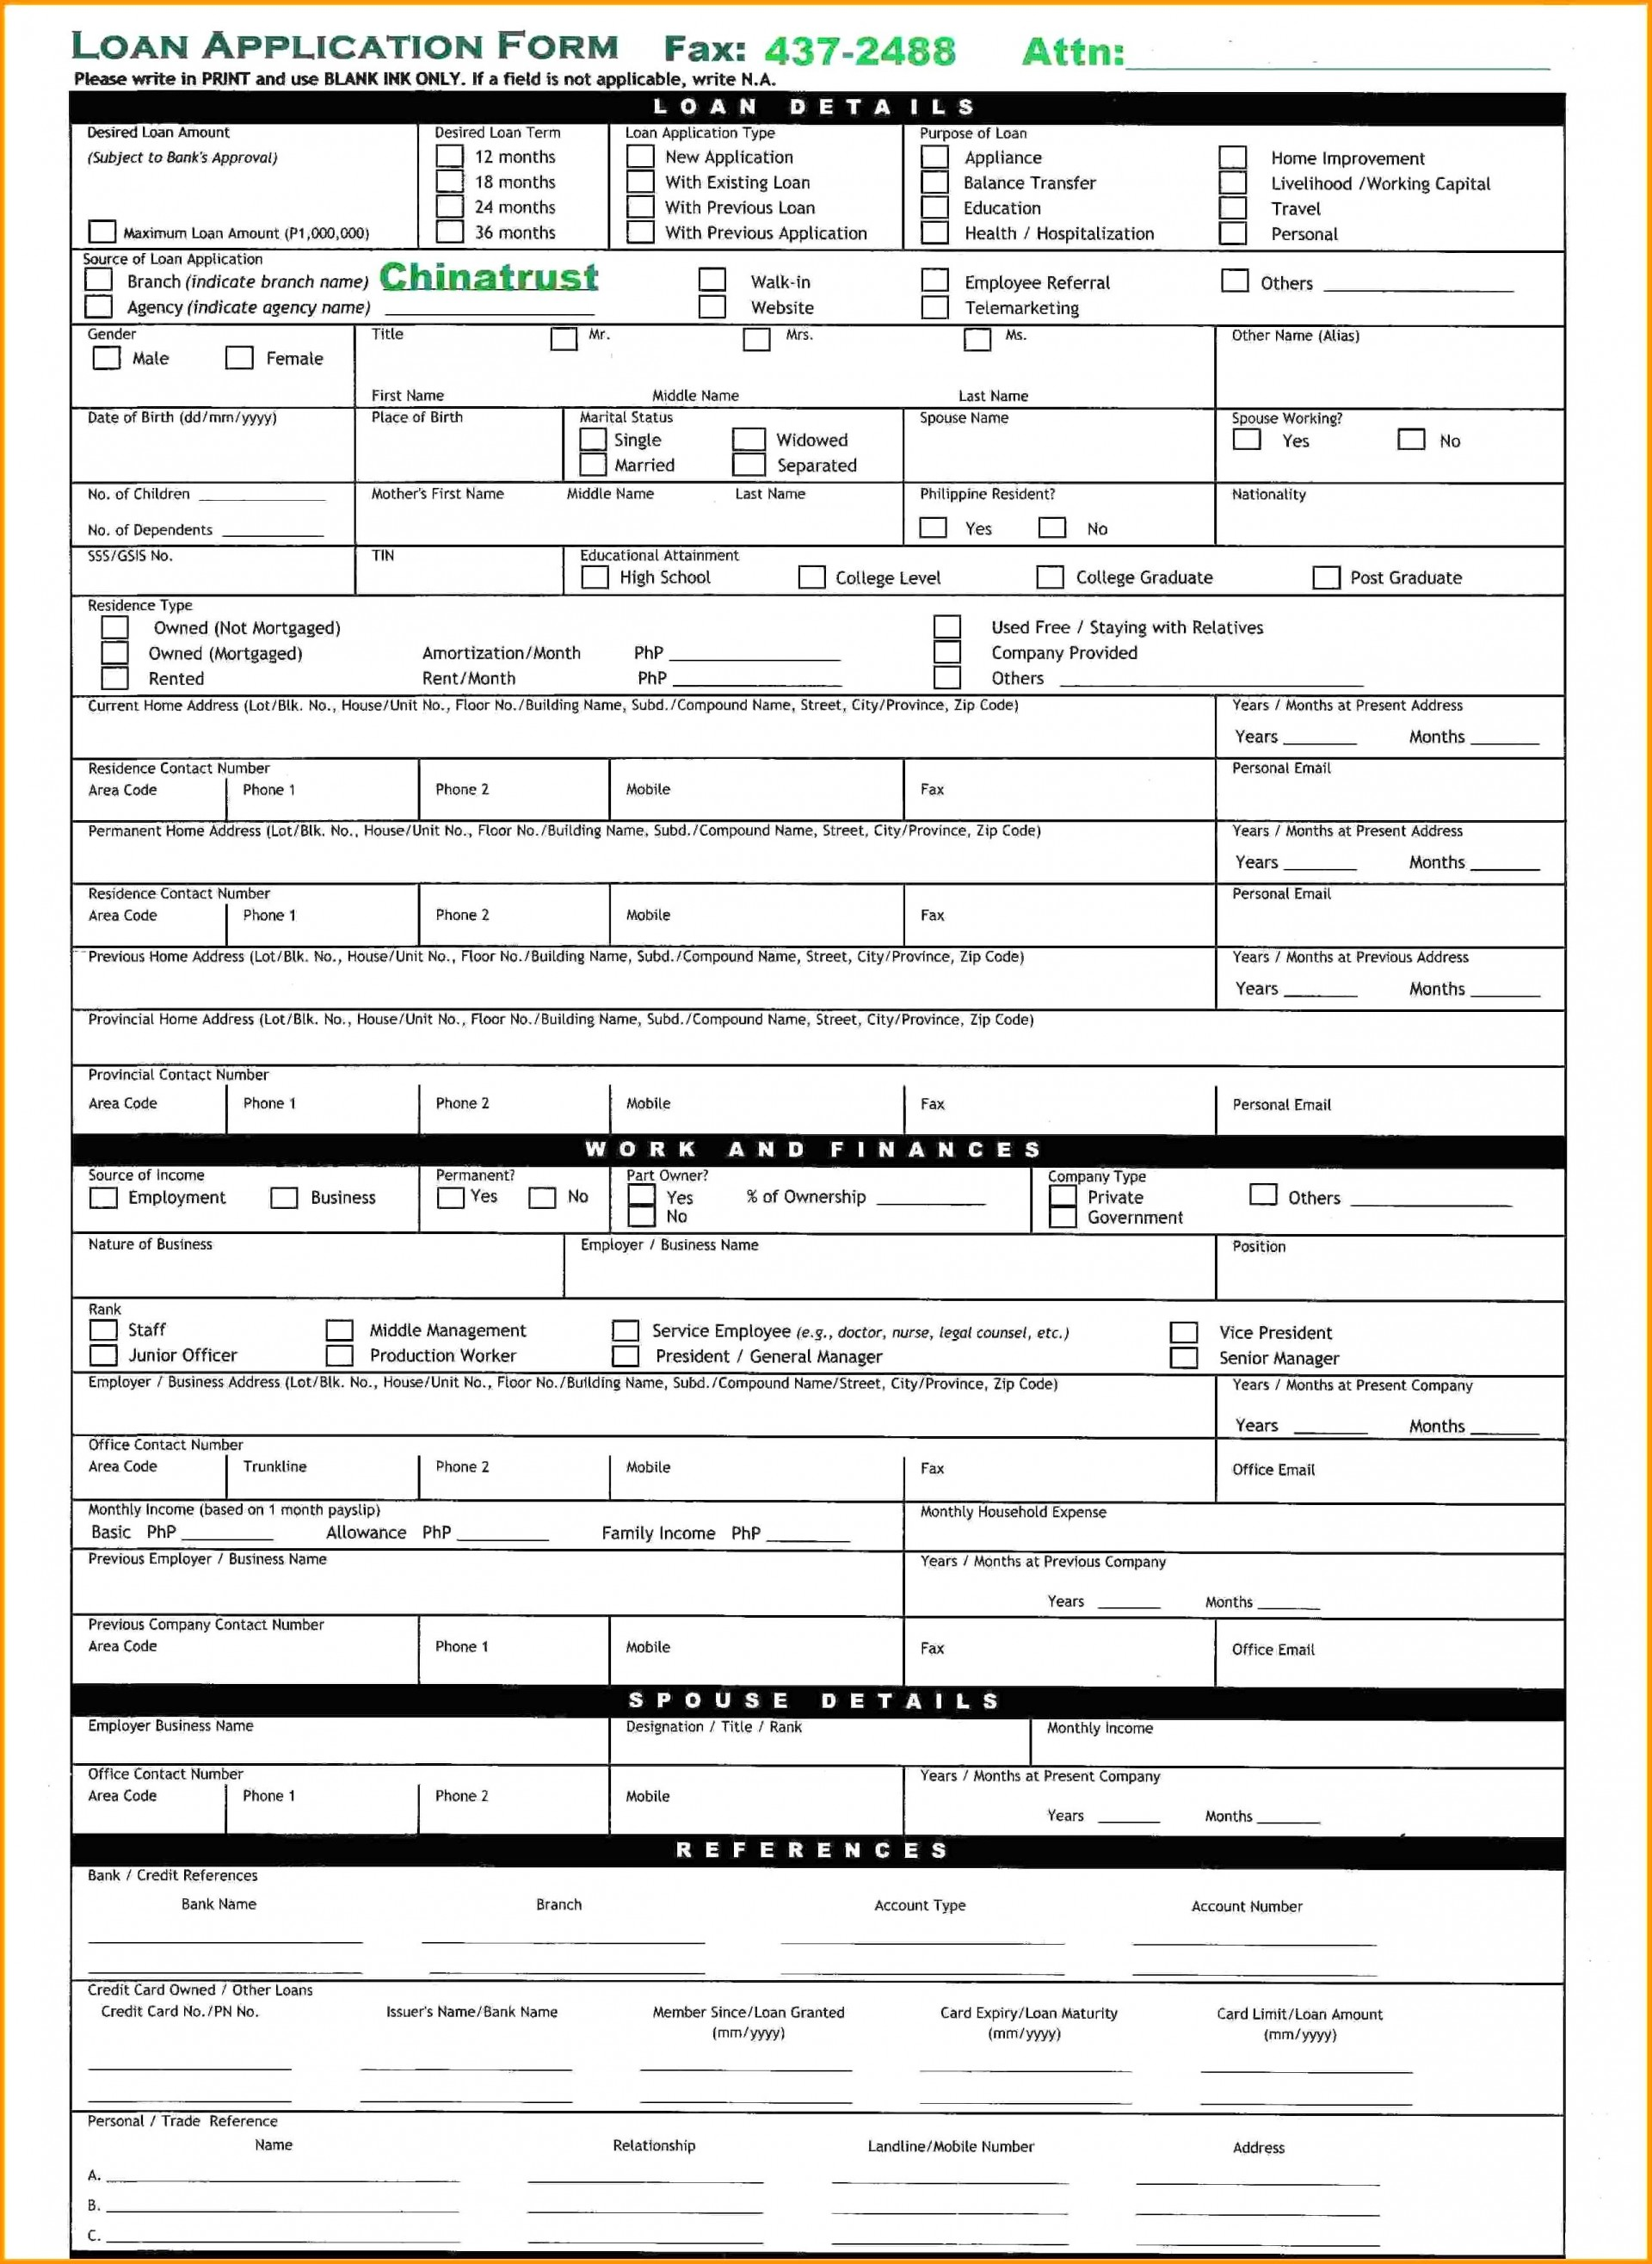 009 Awful Busines Credit Application Template Pdf Picture  Form1920